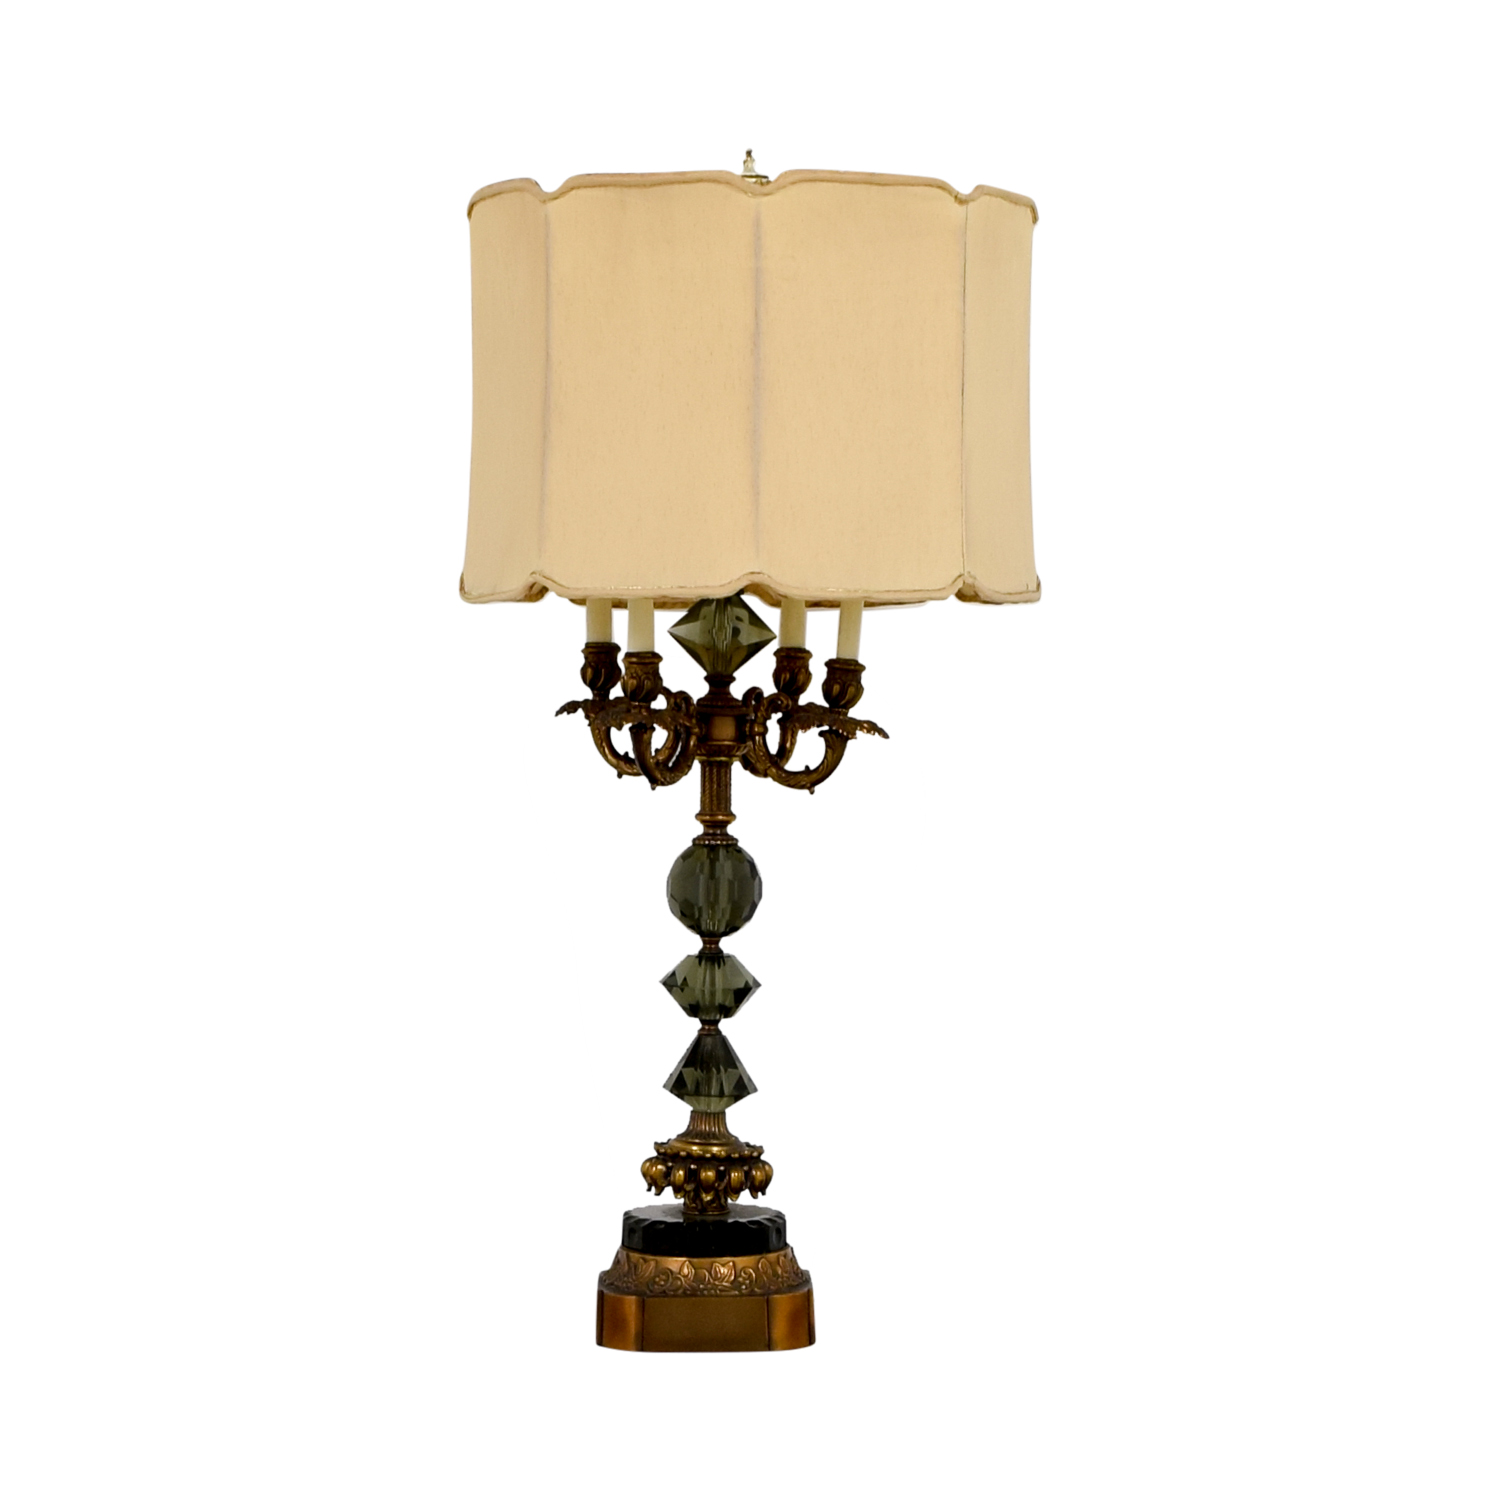 Vintage Mid-Century Gold and Crystal Table Lamp price